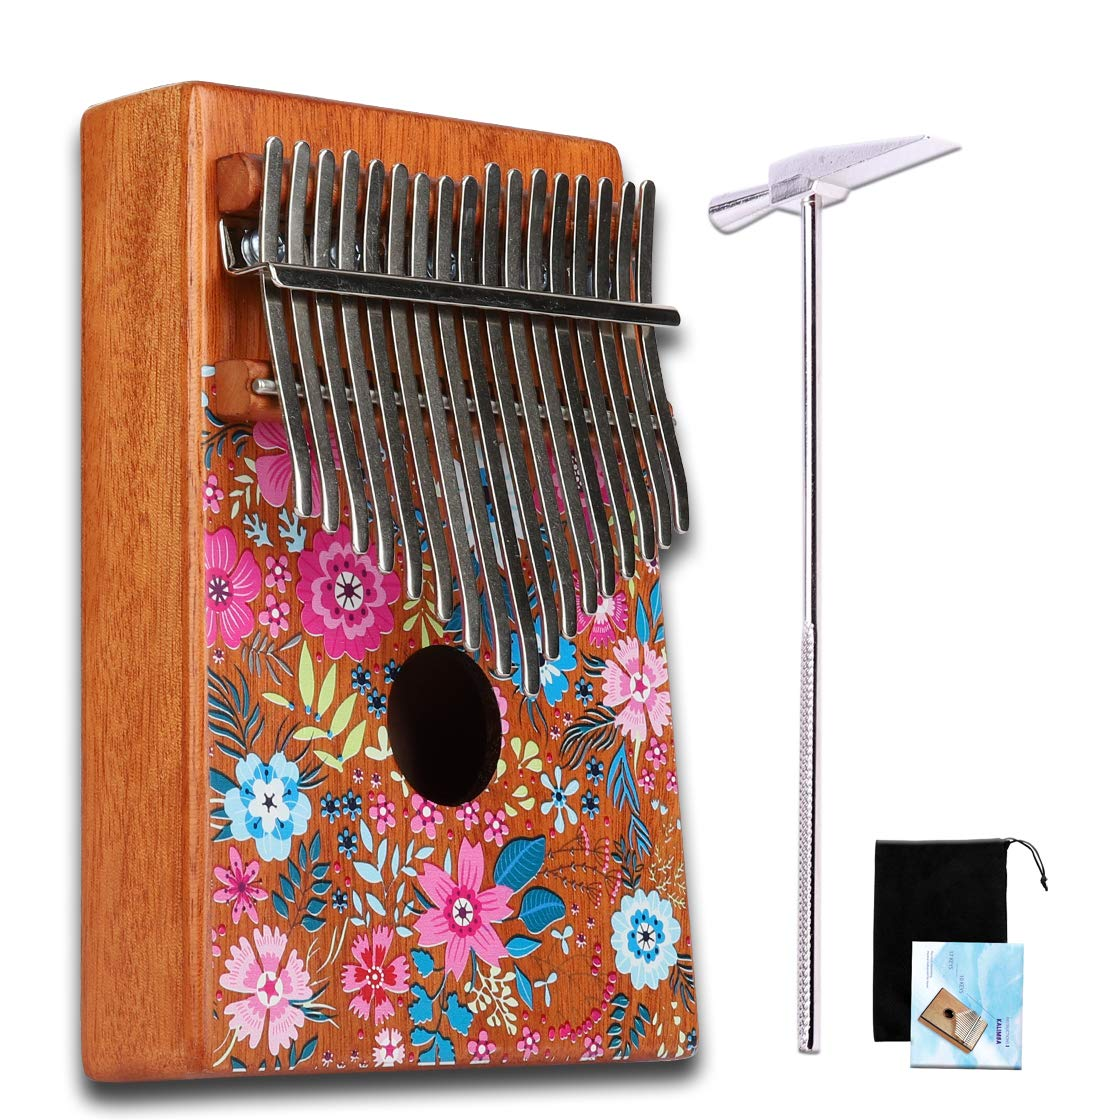 Colorful Kalimba 17 Key African Thumb Piano Mahogany Finger Percussion Keyboard Portable Music Instrument (C002, Cherry blossoms)